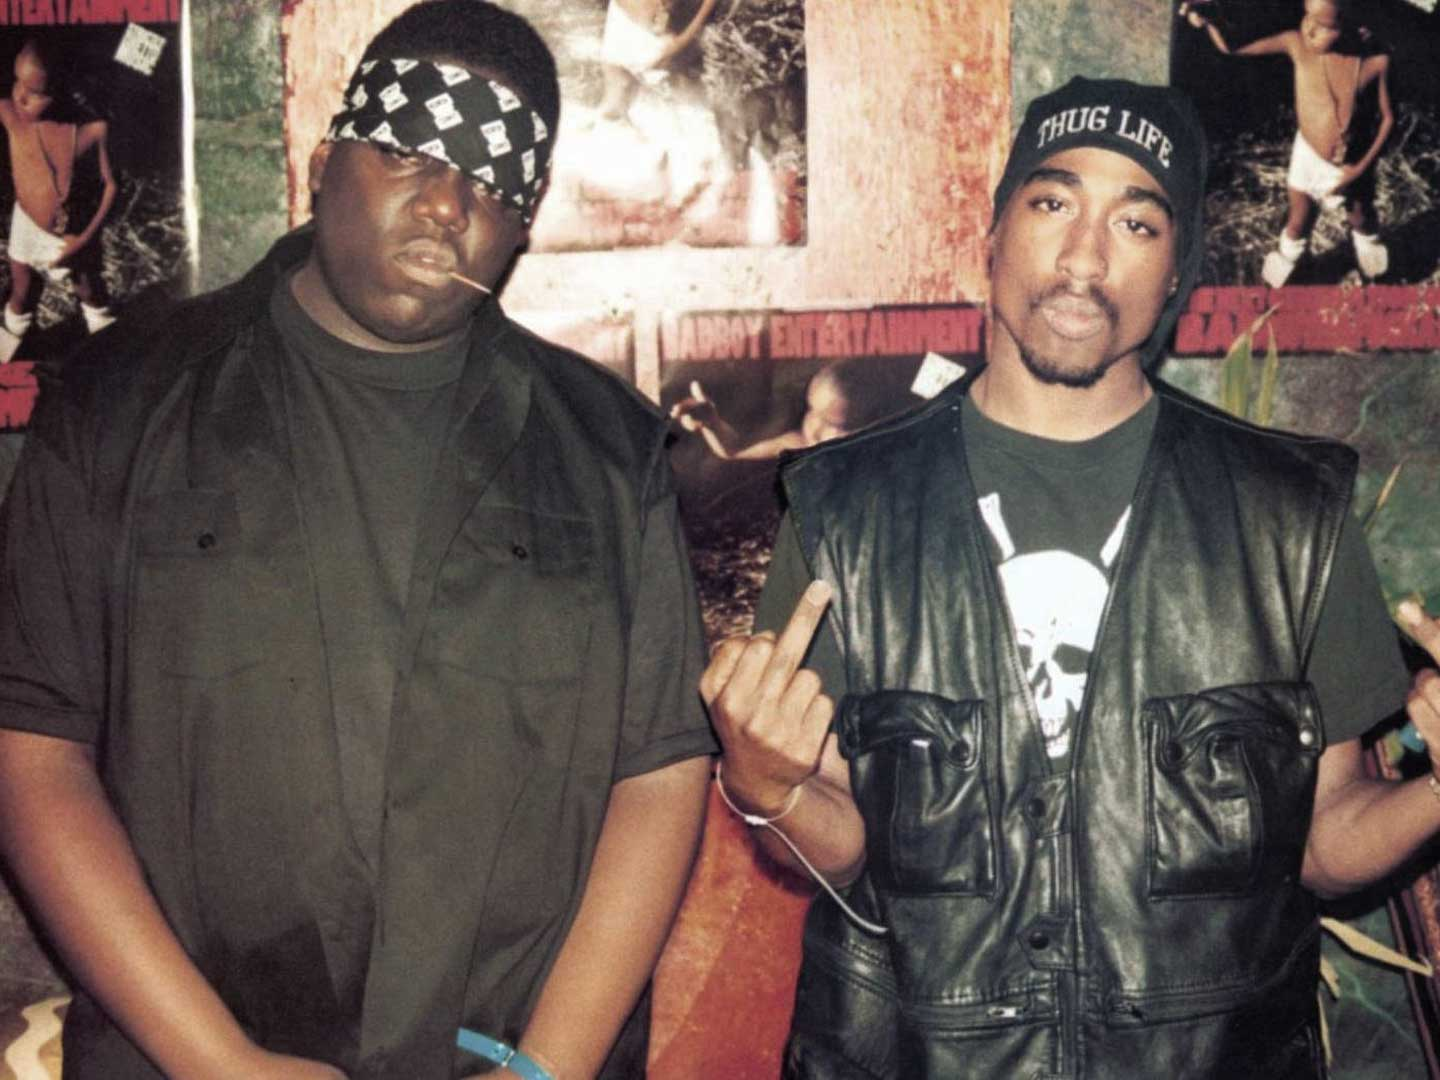 Biggie Smalls and Tupac Shakur in a photo op together